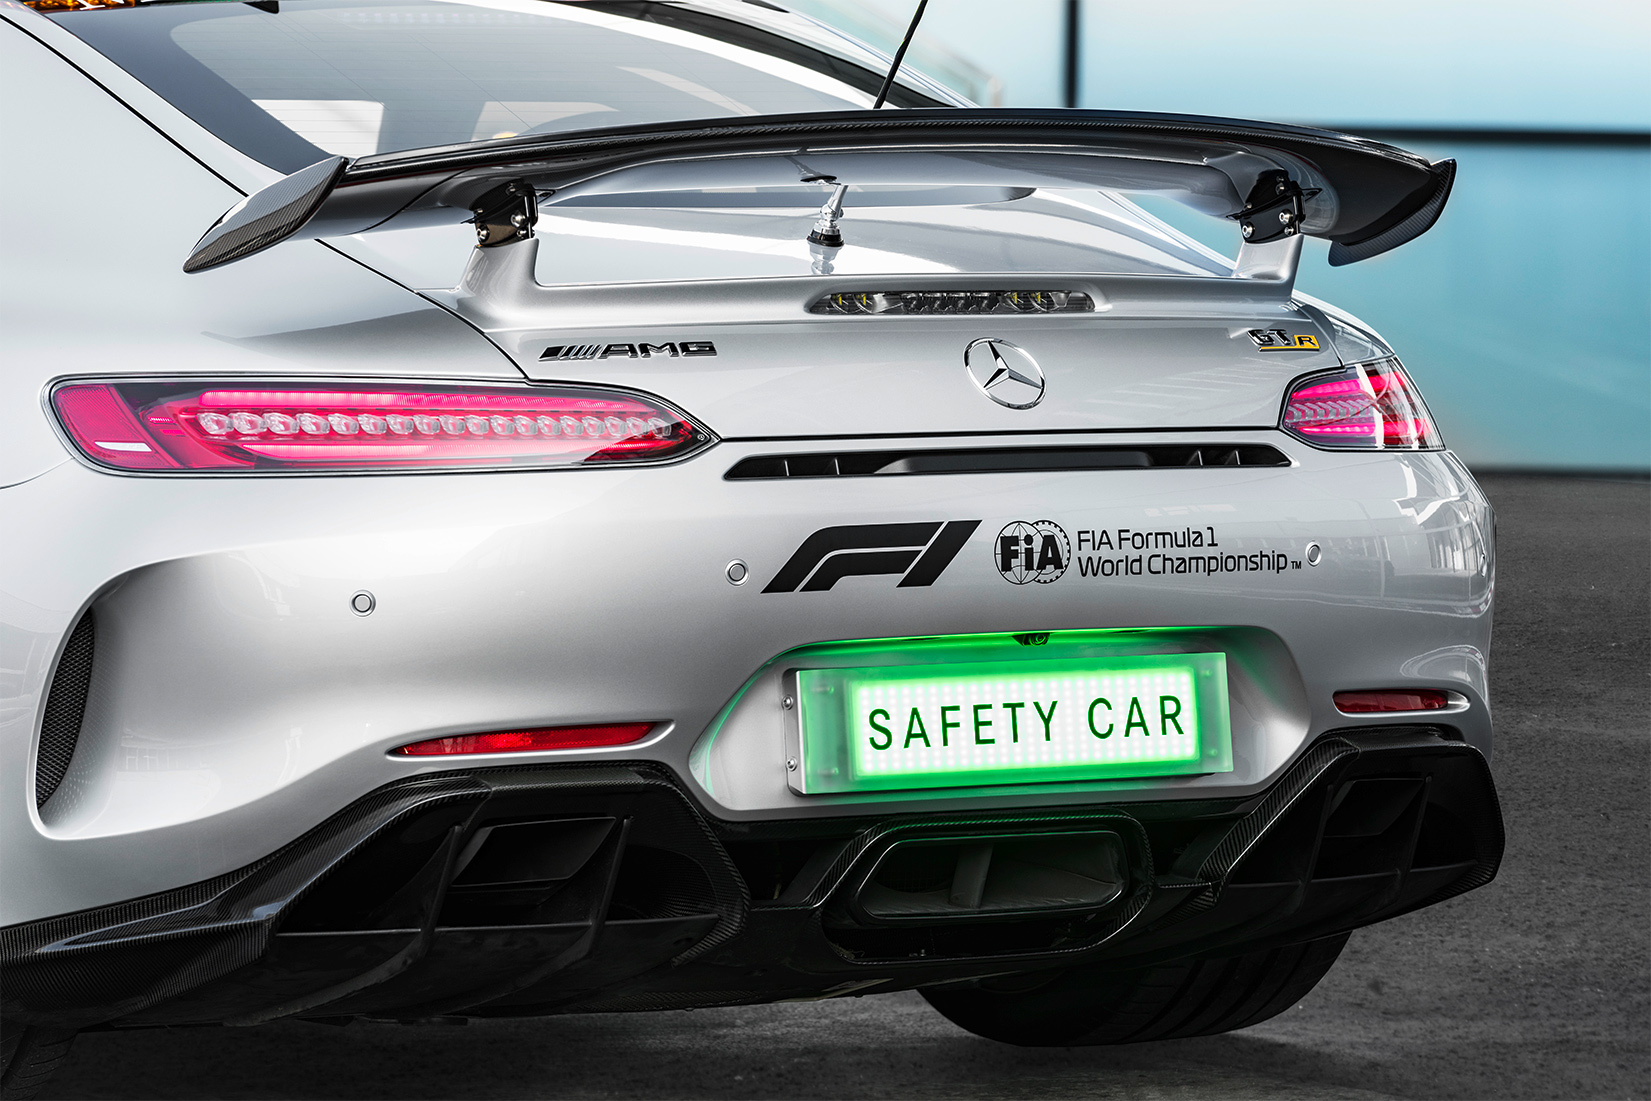 TrackWorthy - 2018 Mercedes-AMG GT R Formula 1 Safety Car (25)